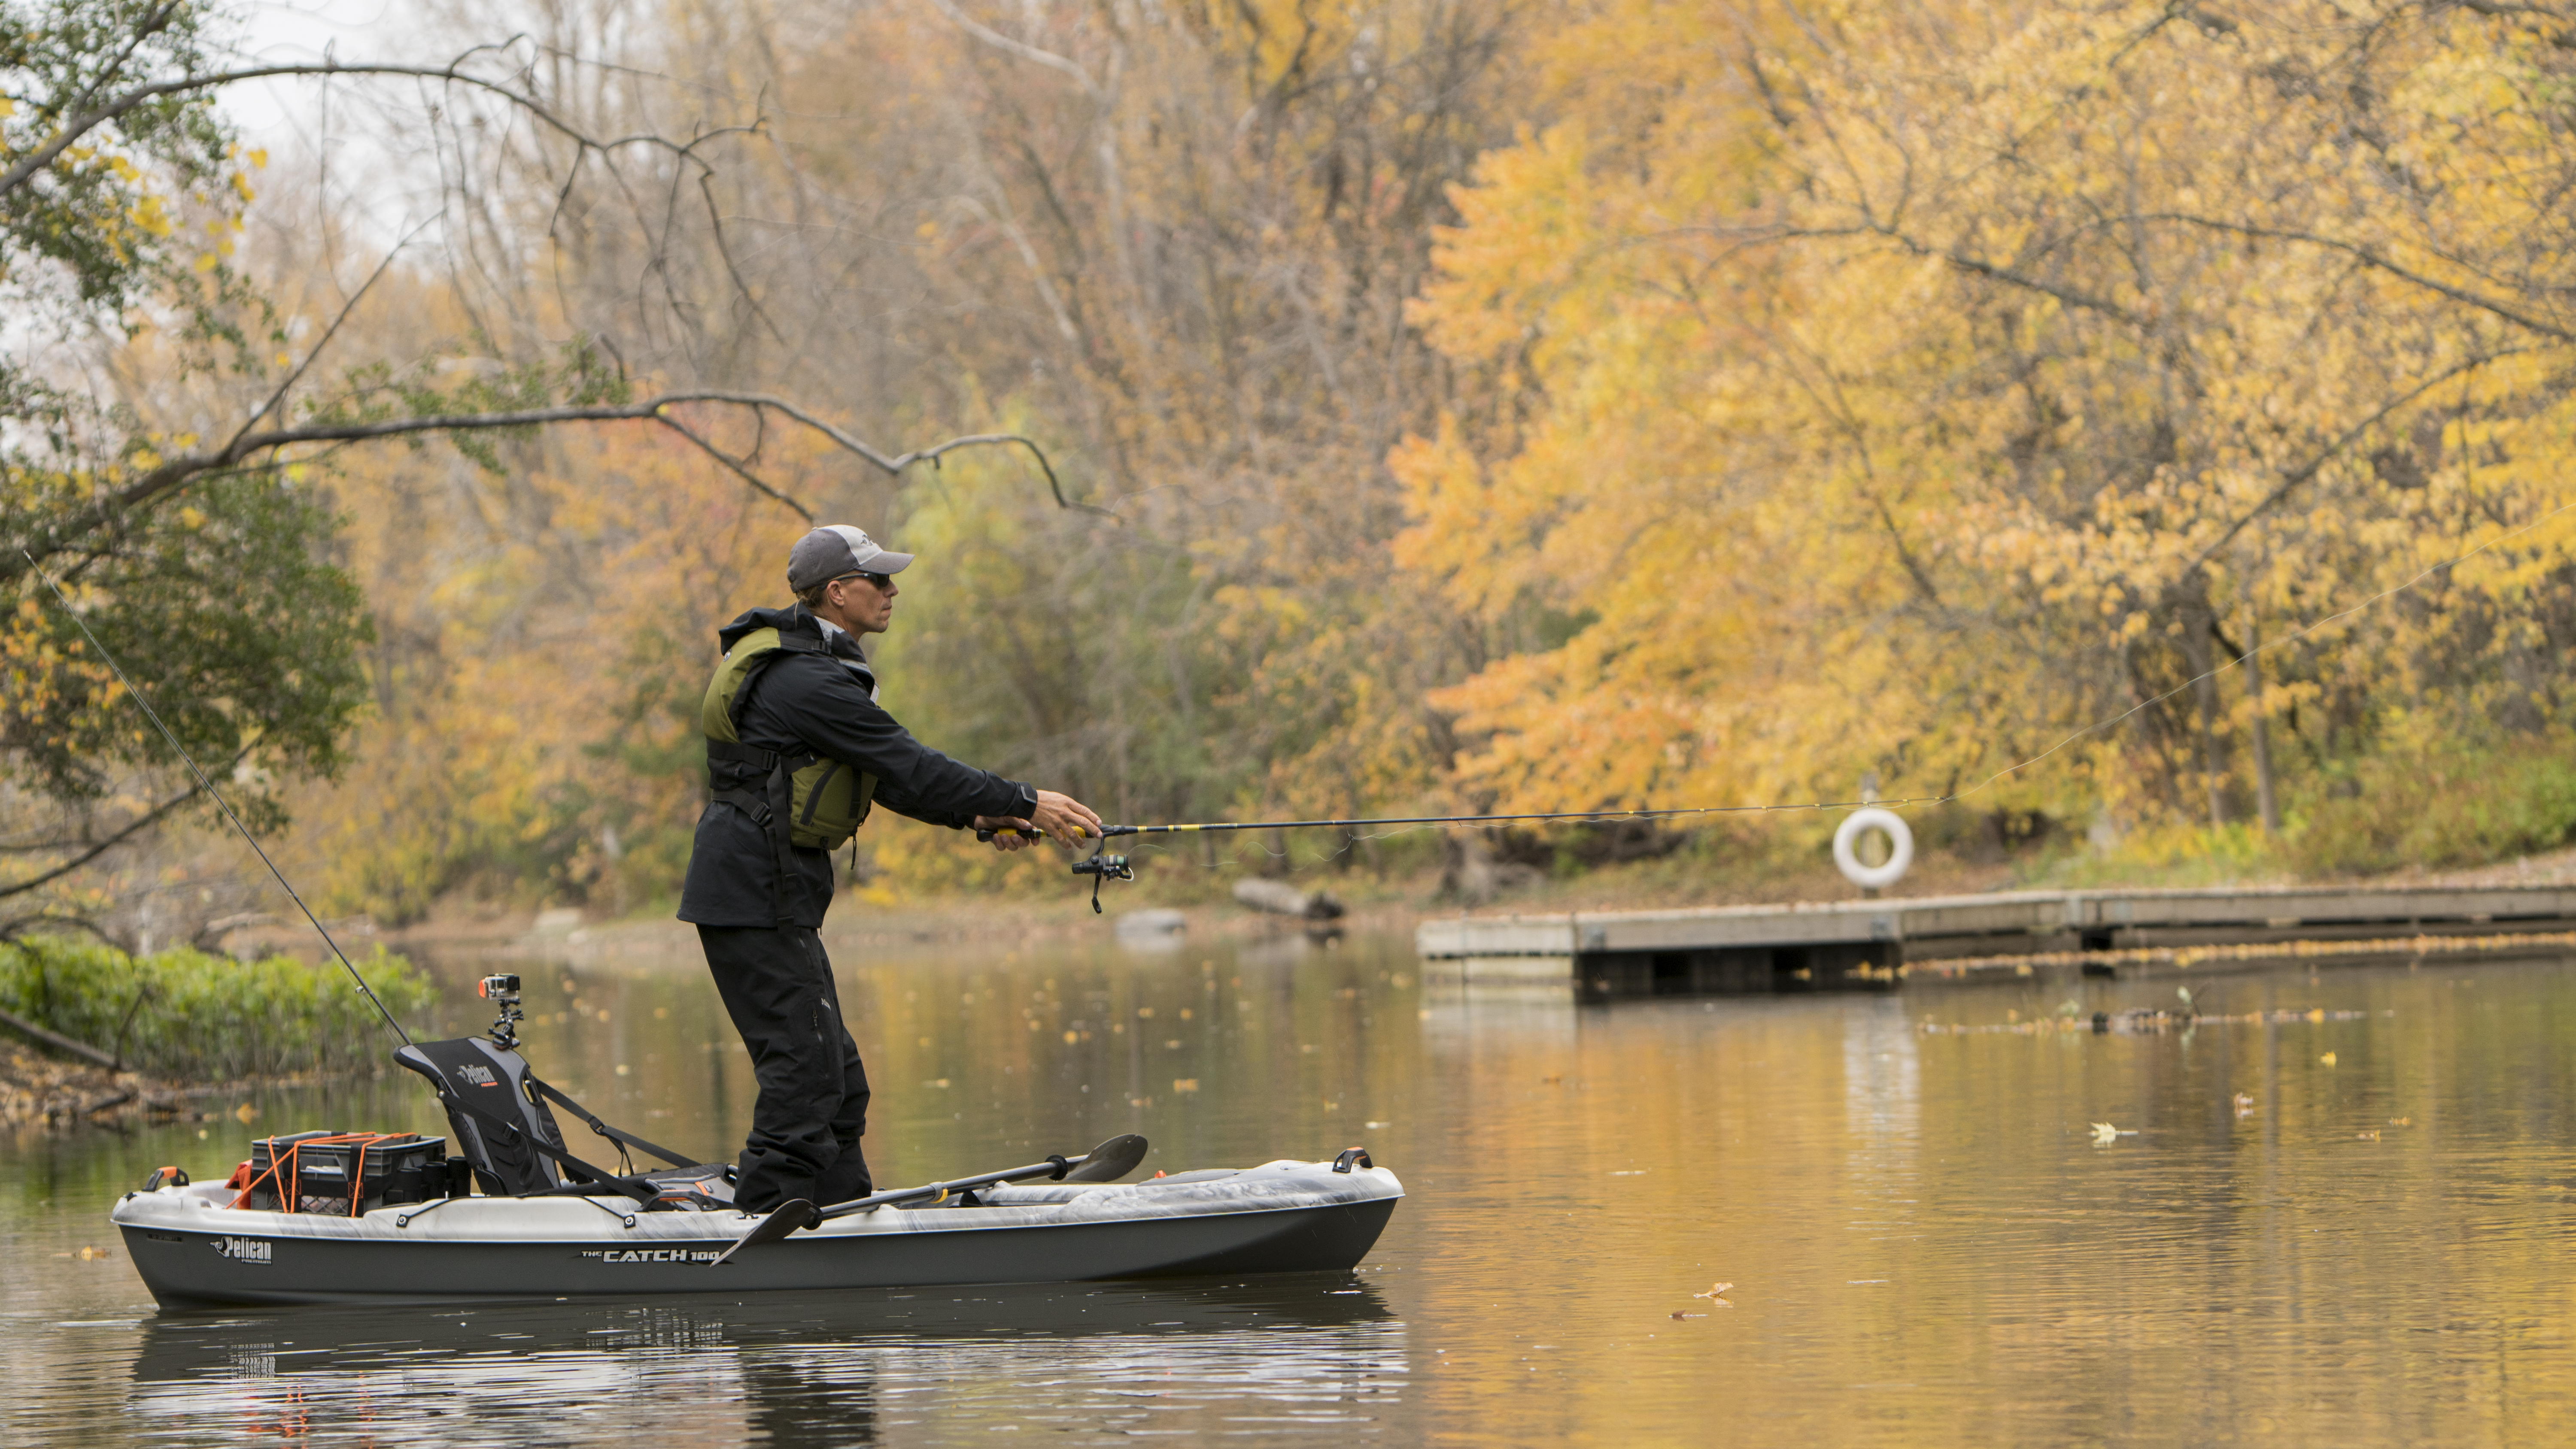 Kayaks: The Catch 100 by Pelican Premium - Image 4603